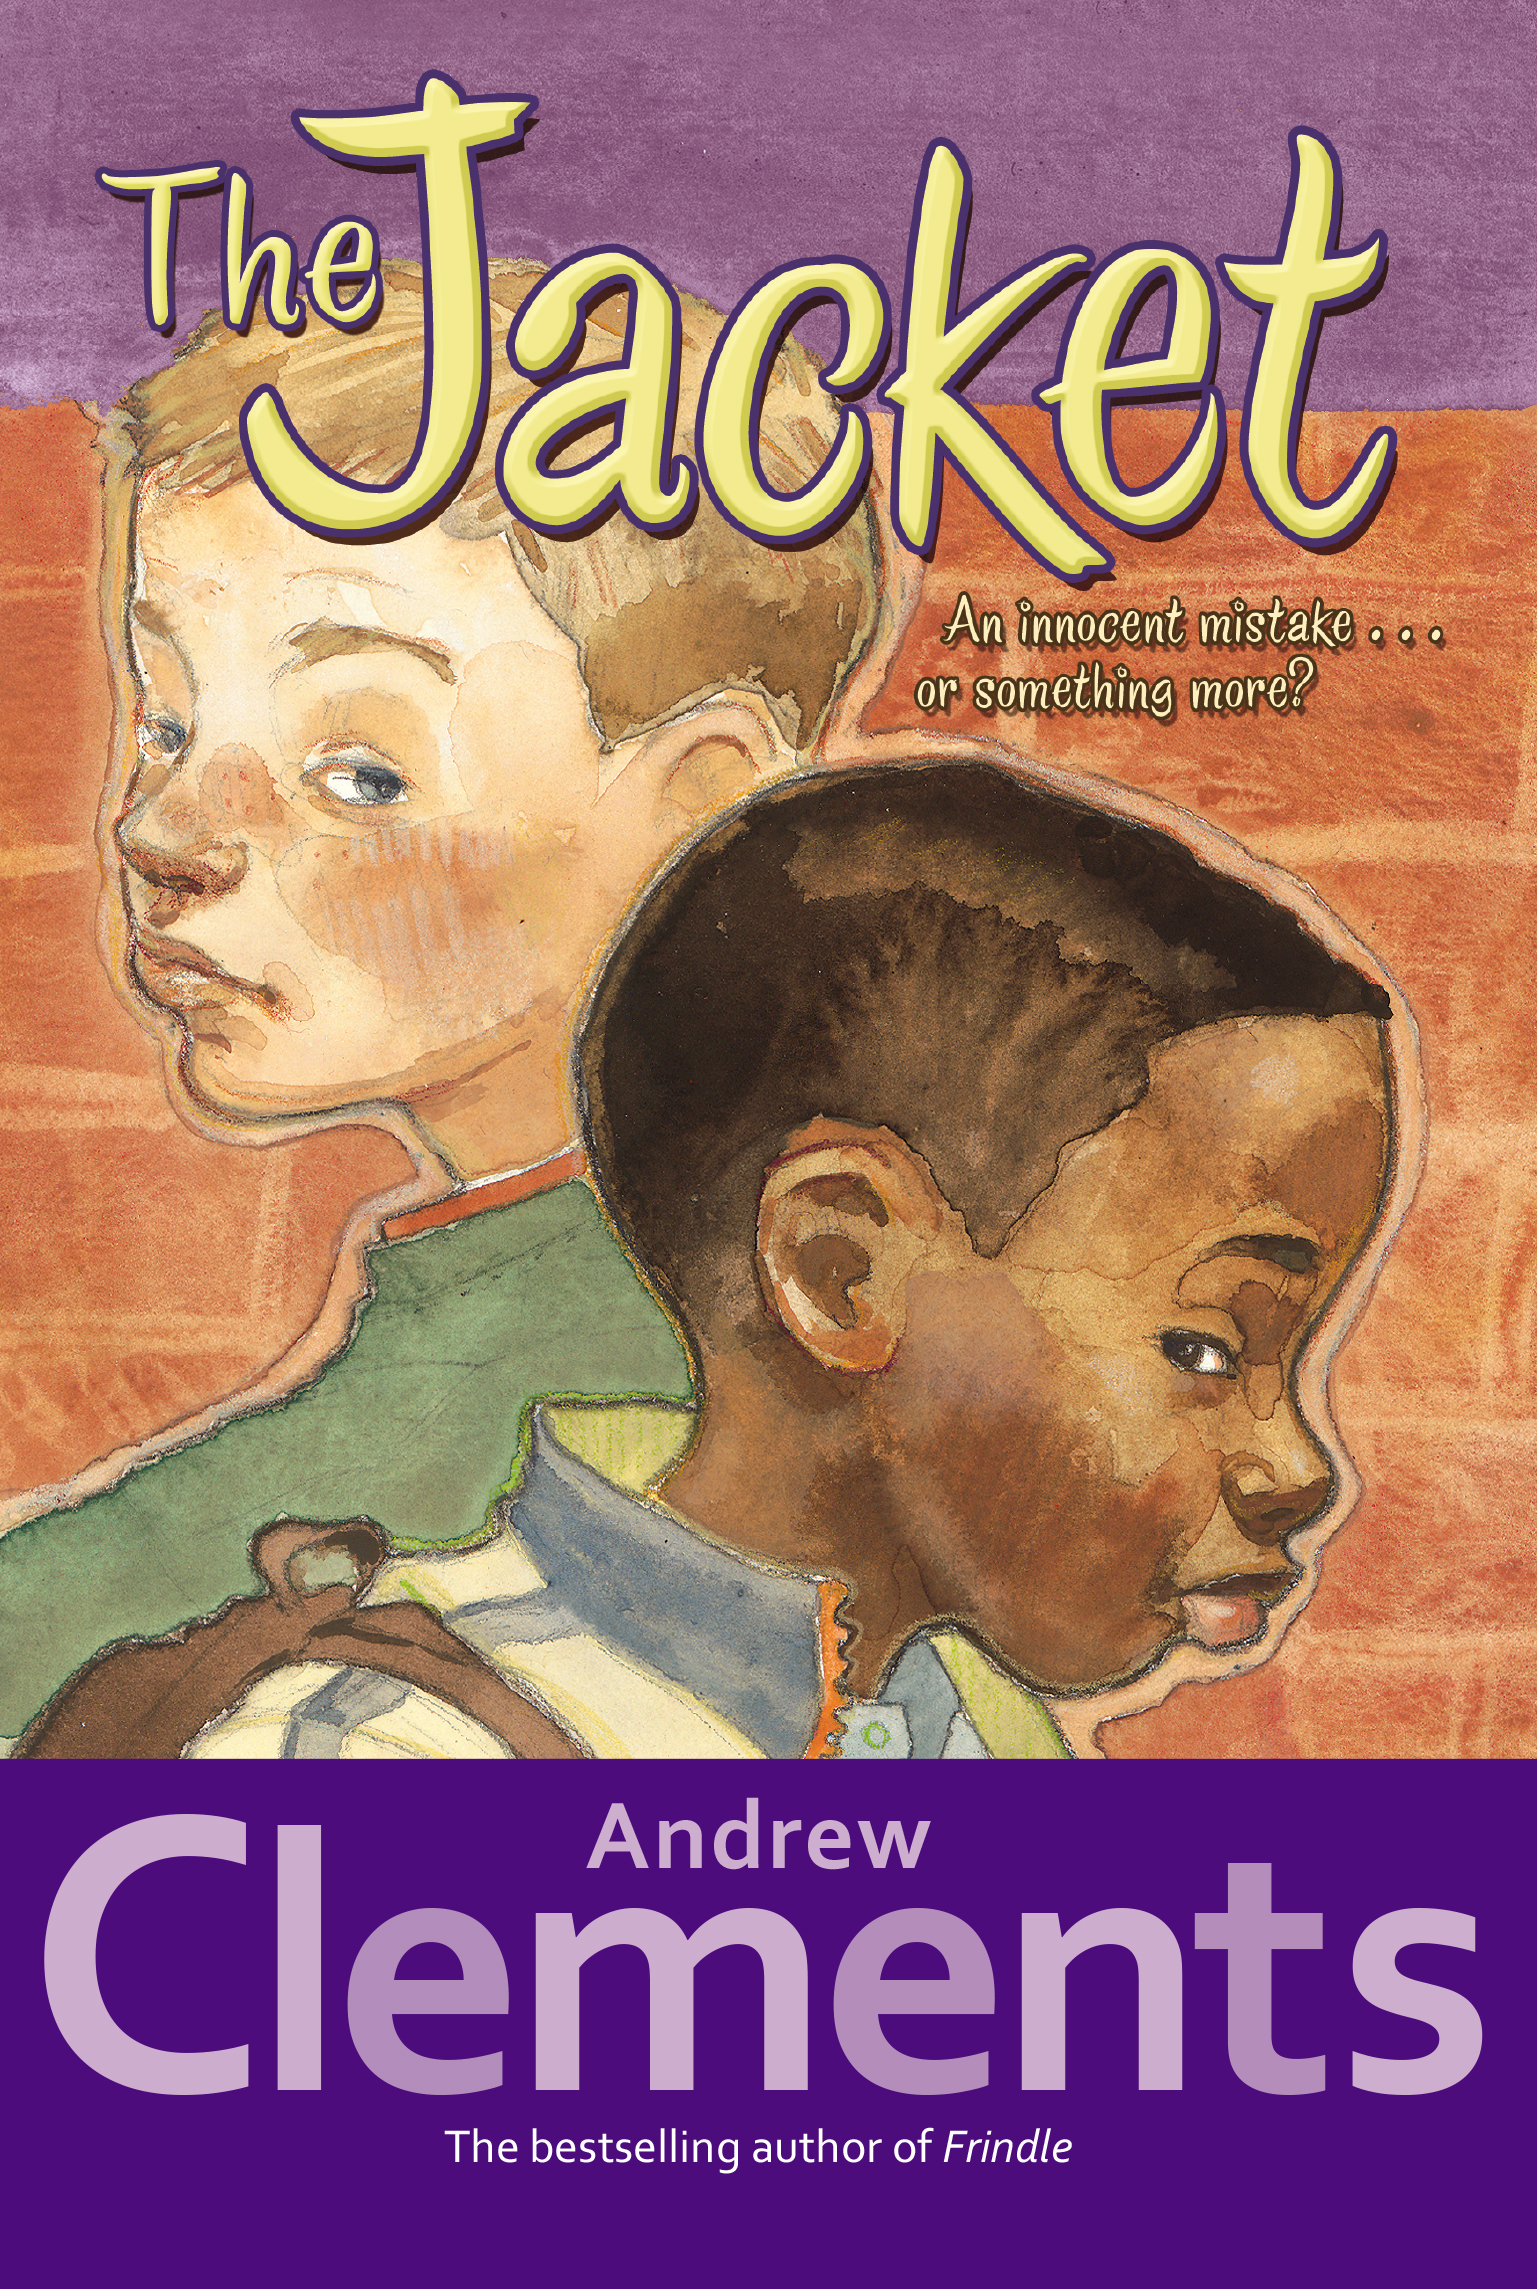 The jacket book by andrew clements mcdavid henderson official cvr9780689860102 9780689860102 hr the jacket publicscrutiny Gallery